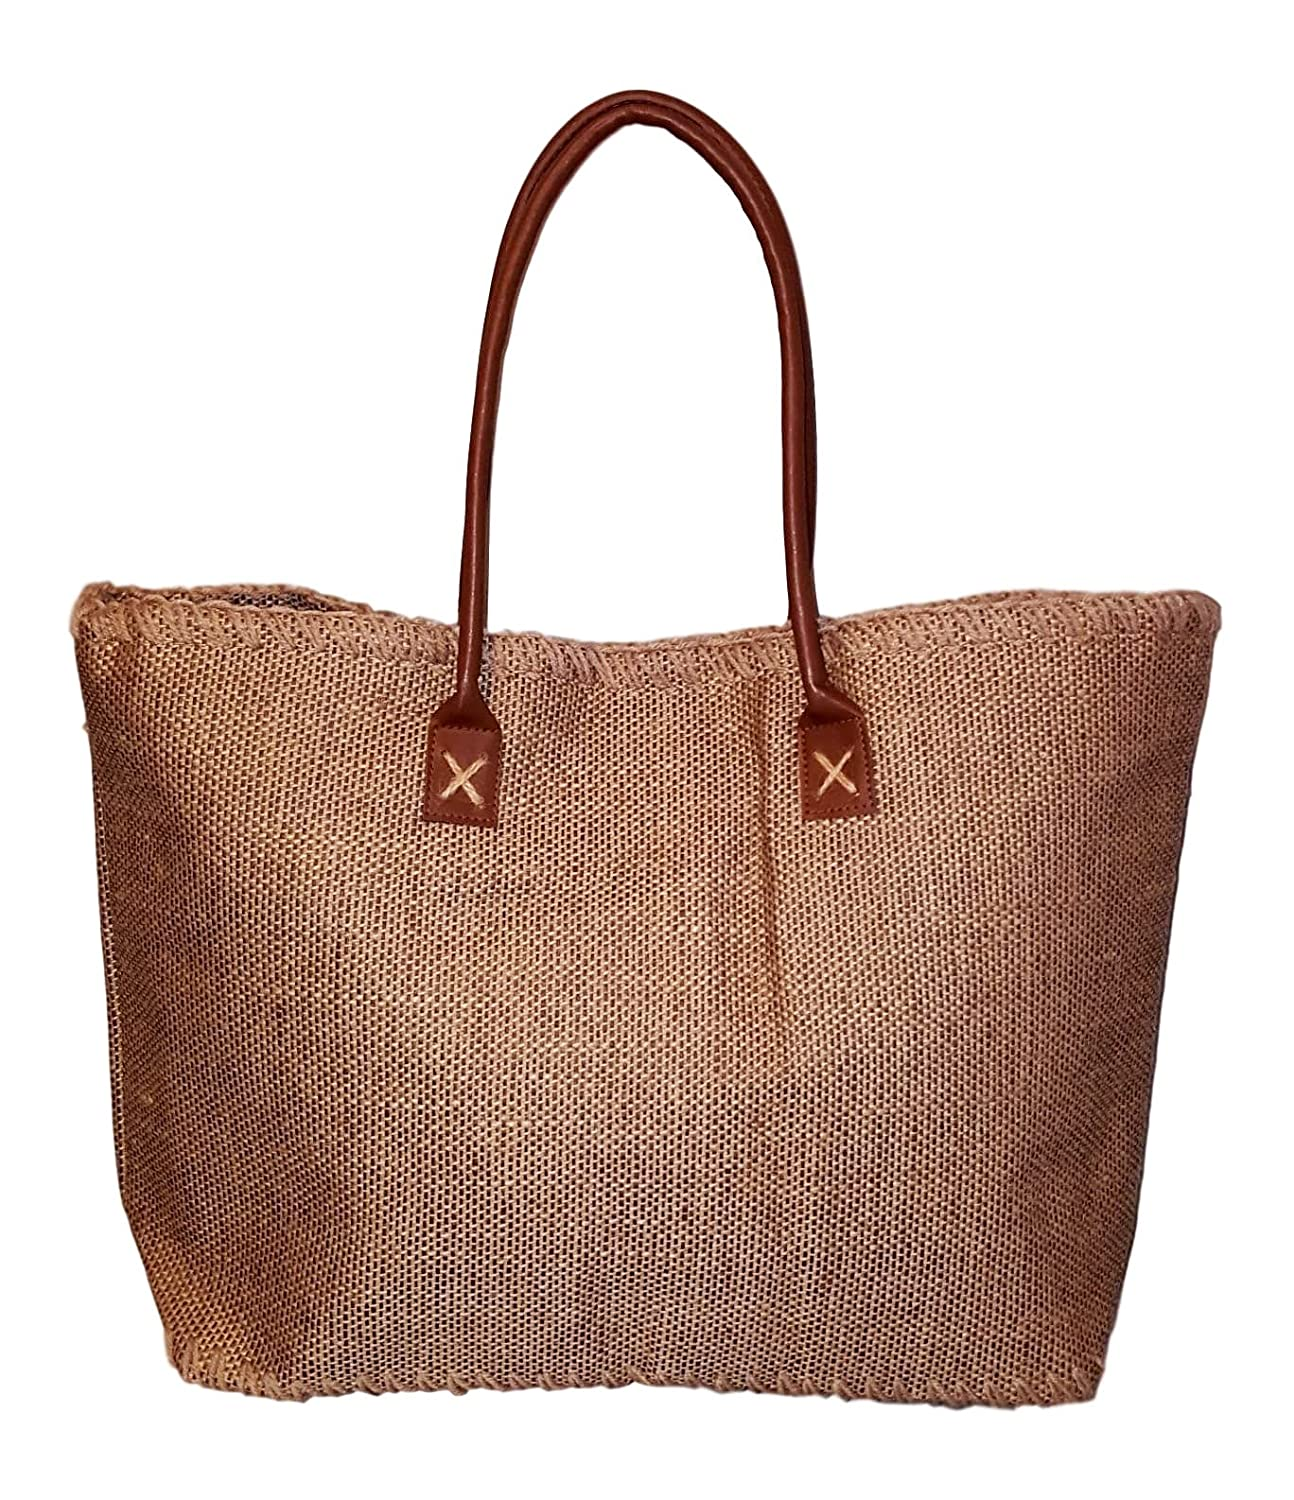 2c4dd41d5 Amazon.com | 101 BEACH Large Brown Jute Tote Bag - Personalized Custom  Embroidered Monogram | Travel Totes